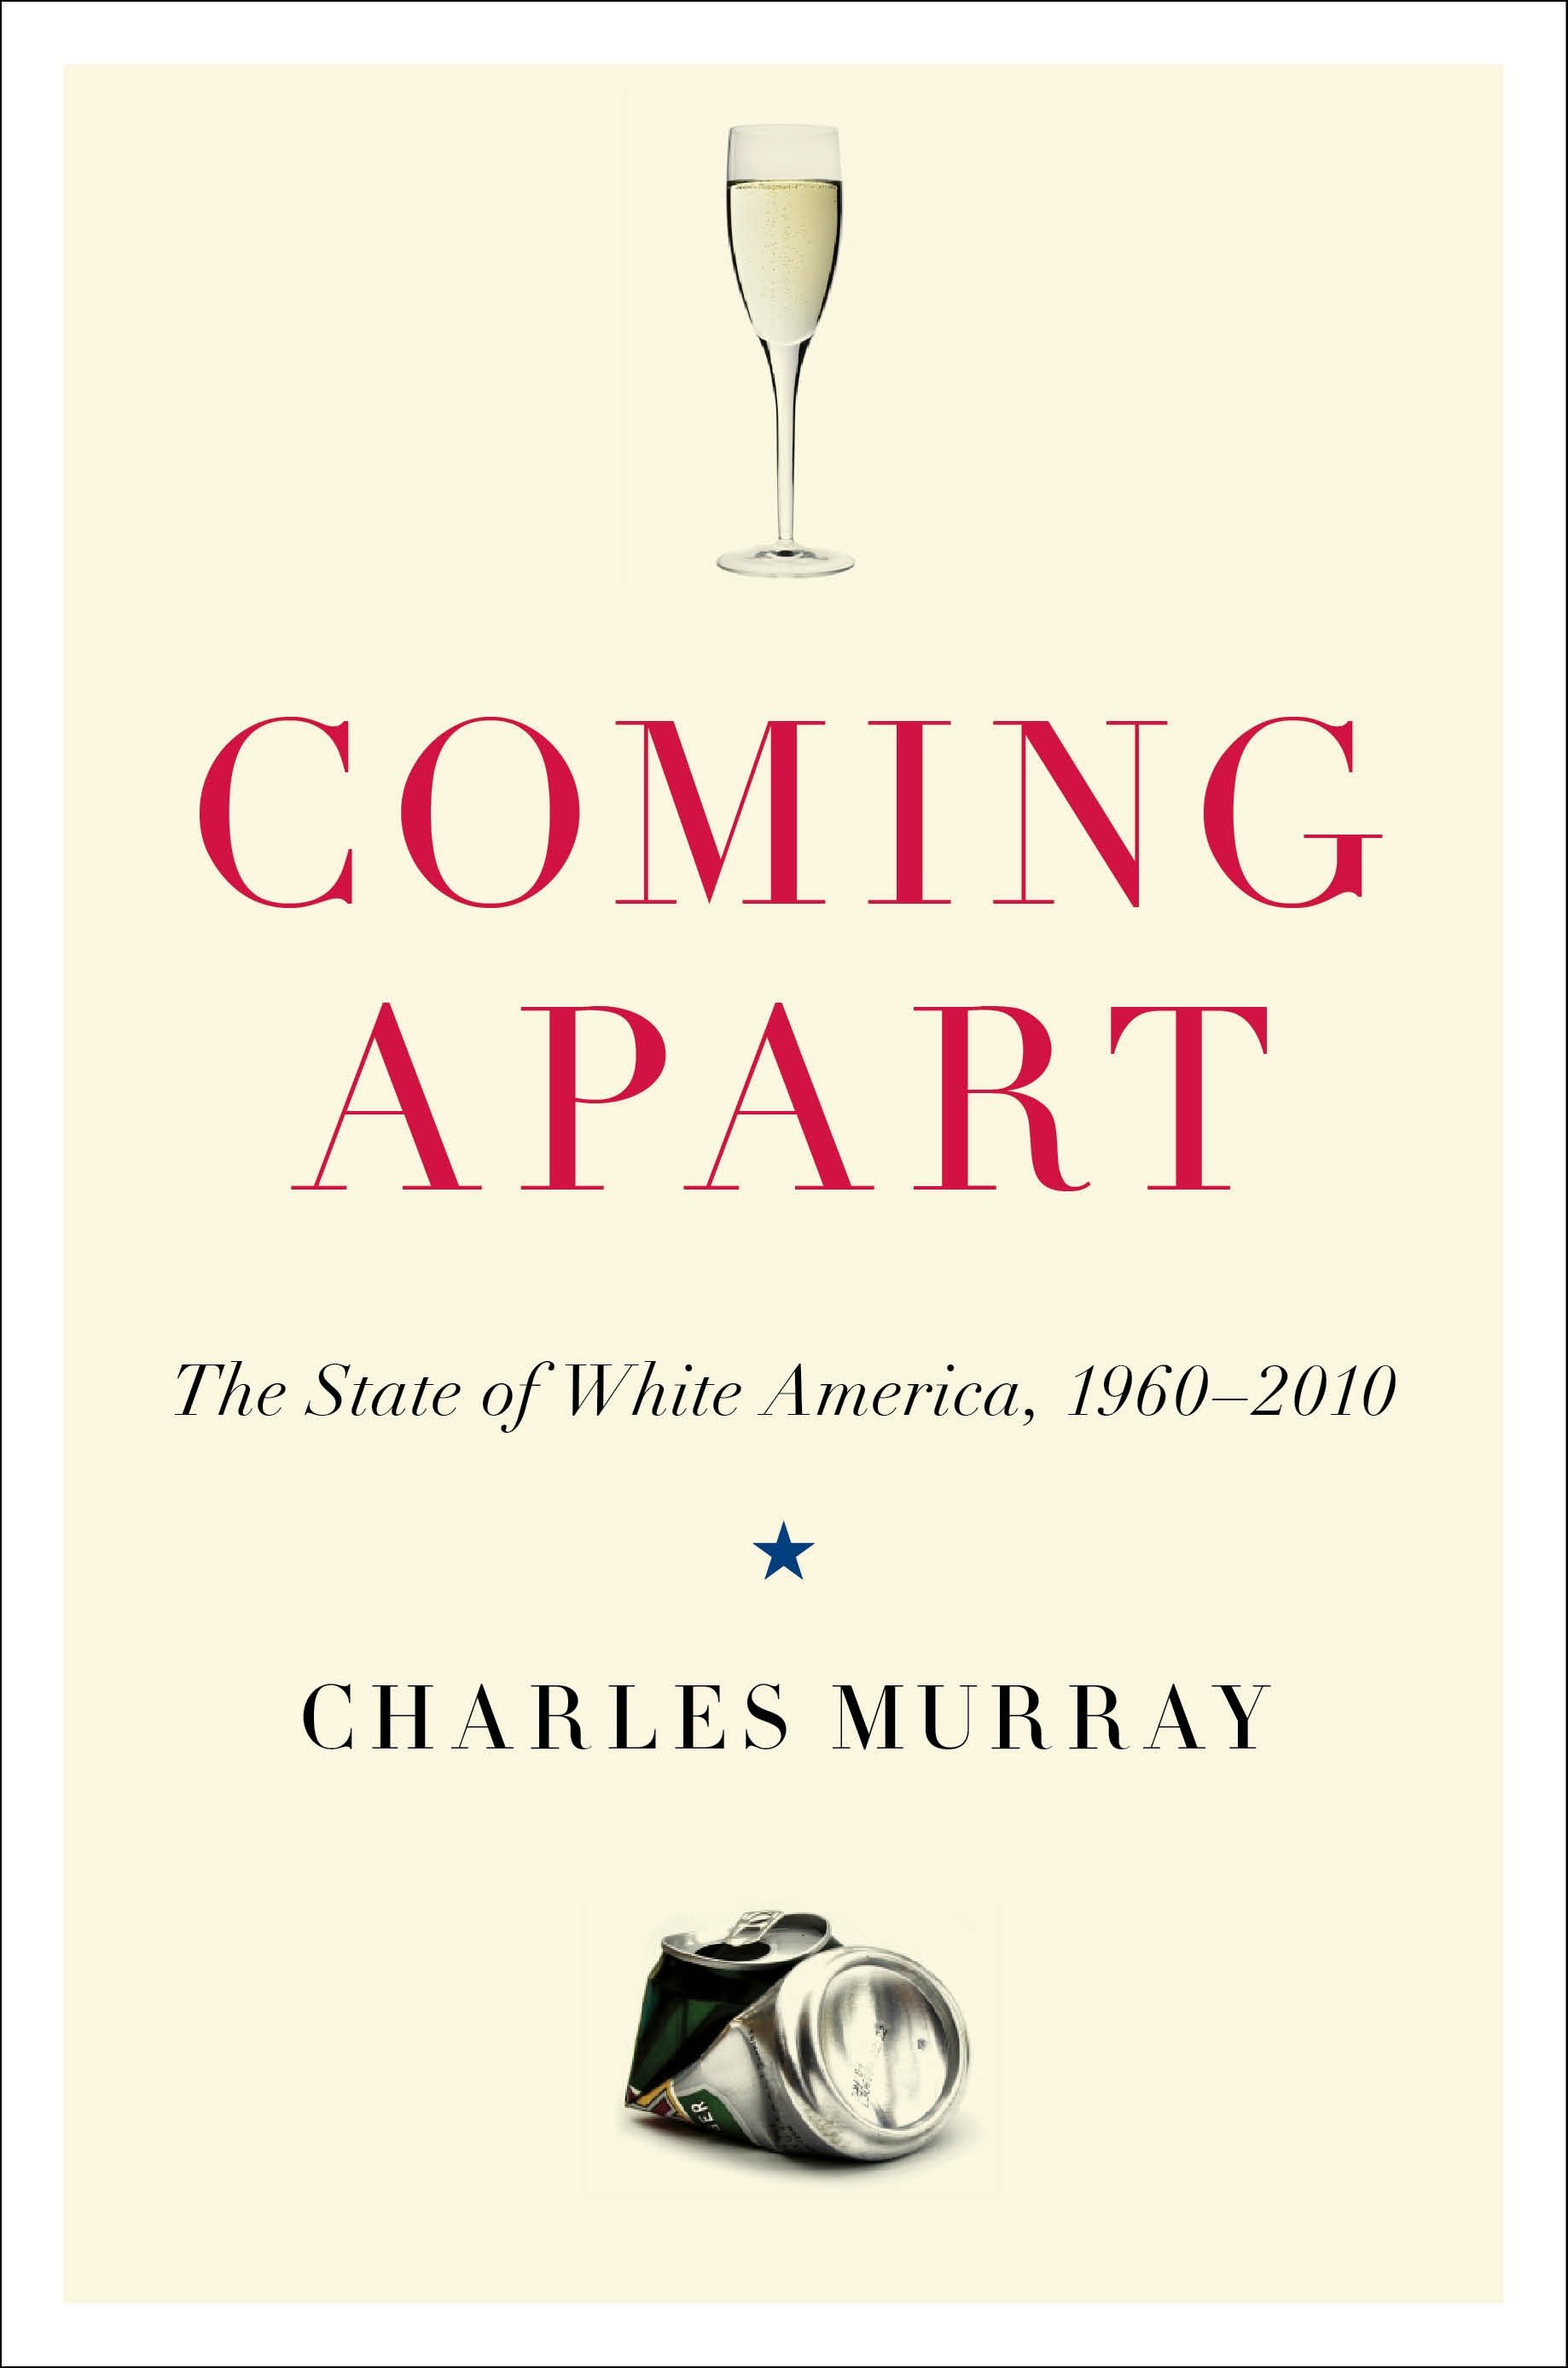 Coming apart the state of white America, 1960-2010 cover image